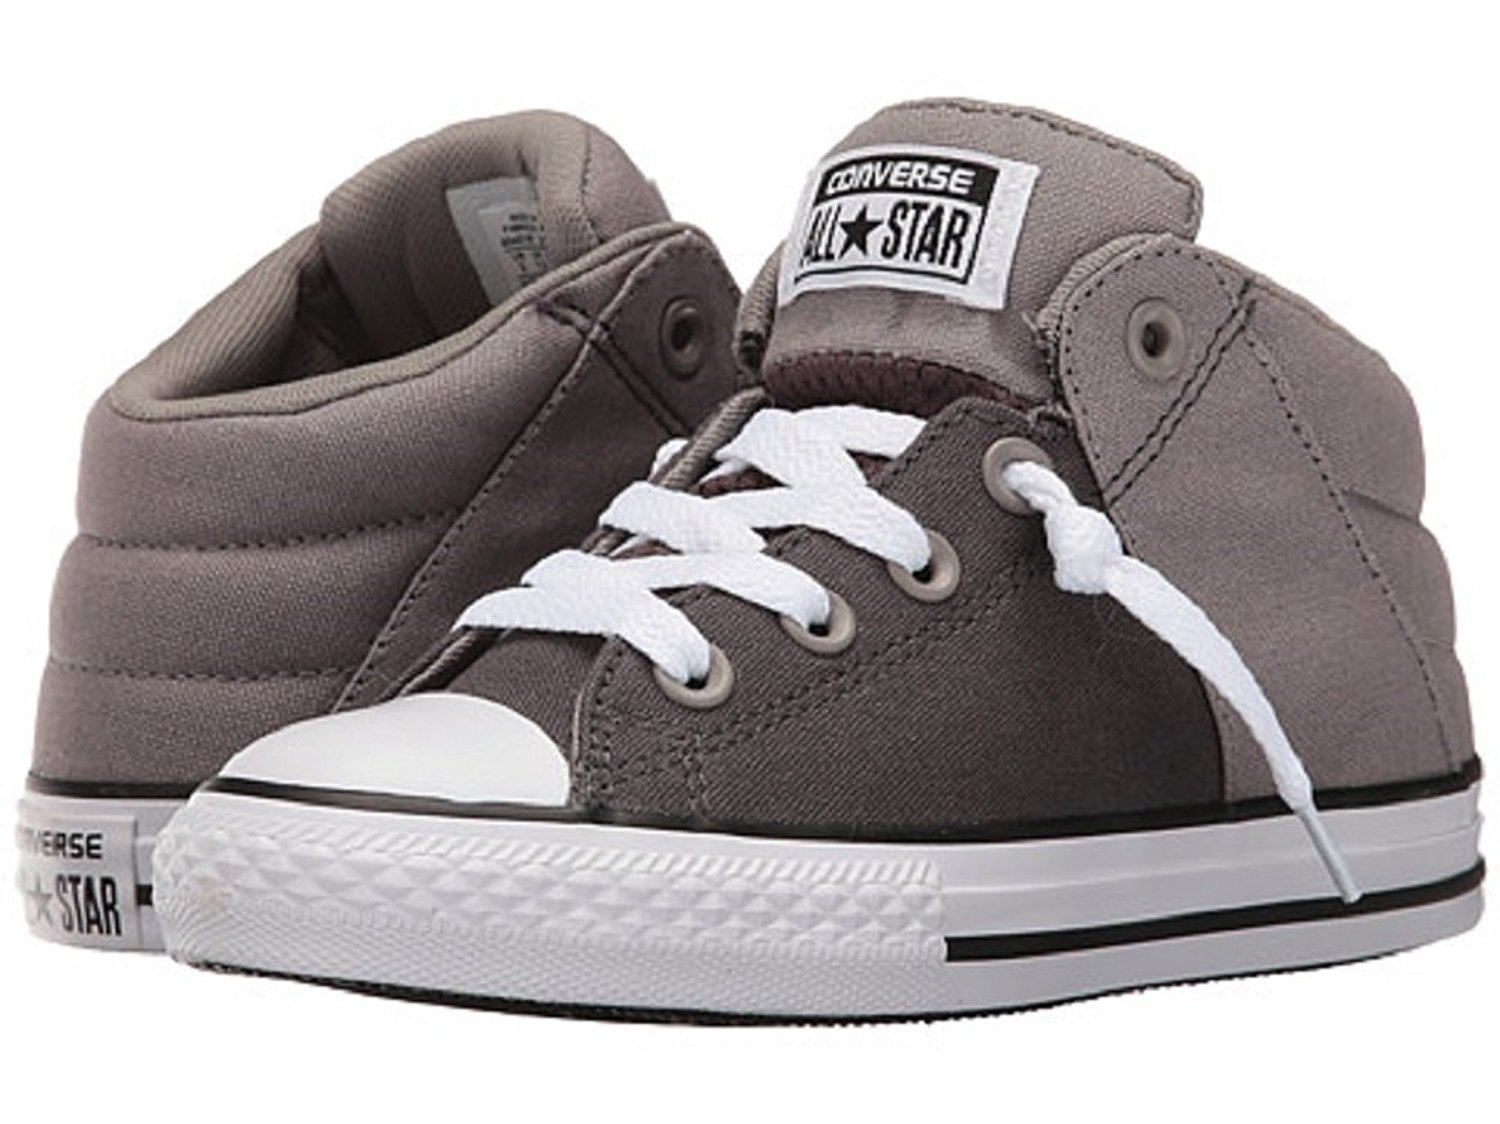 46ef6cdc0b2e Get Quotations · Converse Chuck Taylor All Star Axel - Kids-11.5